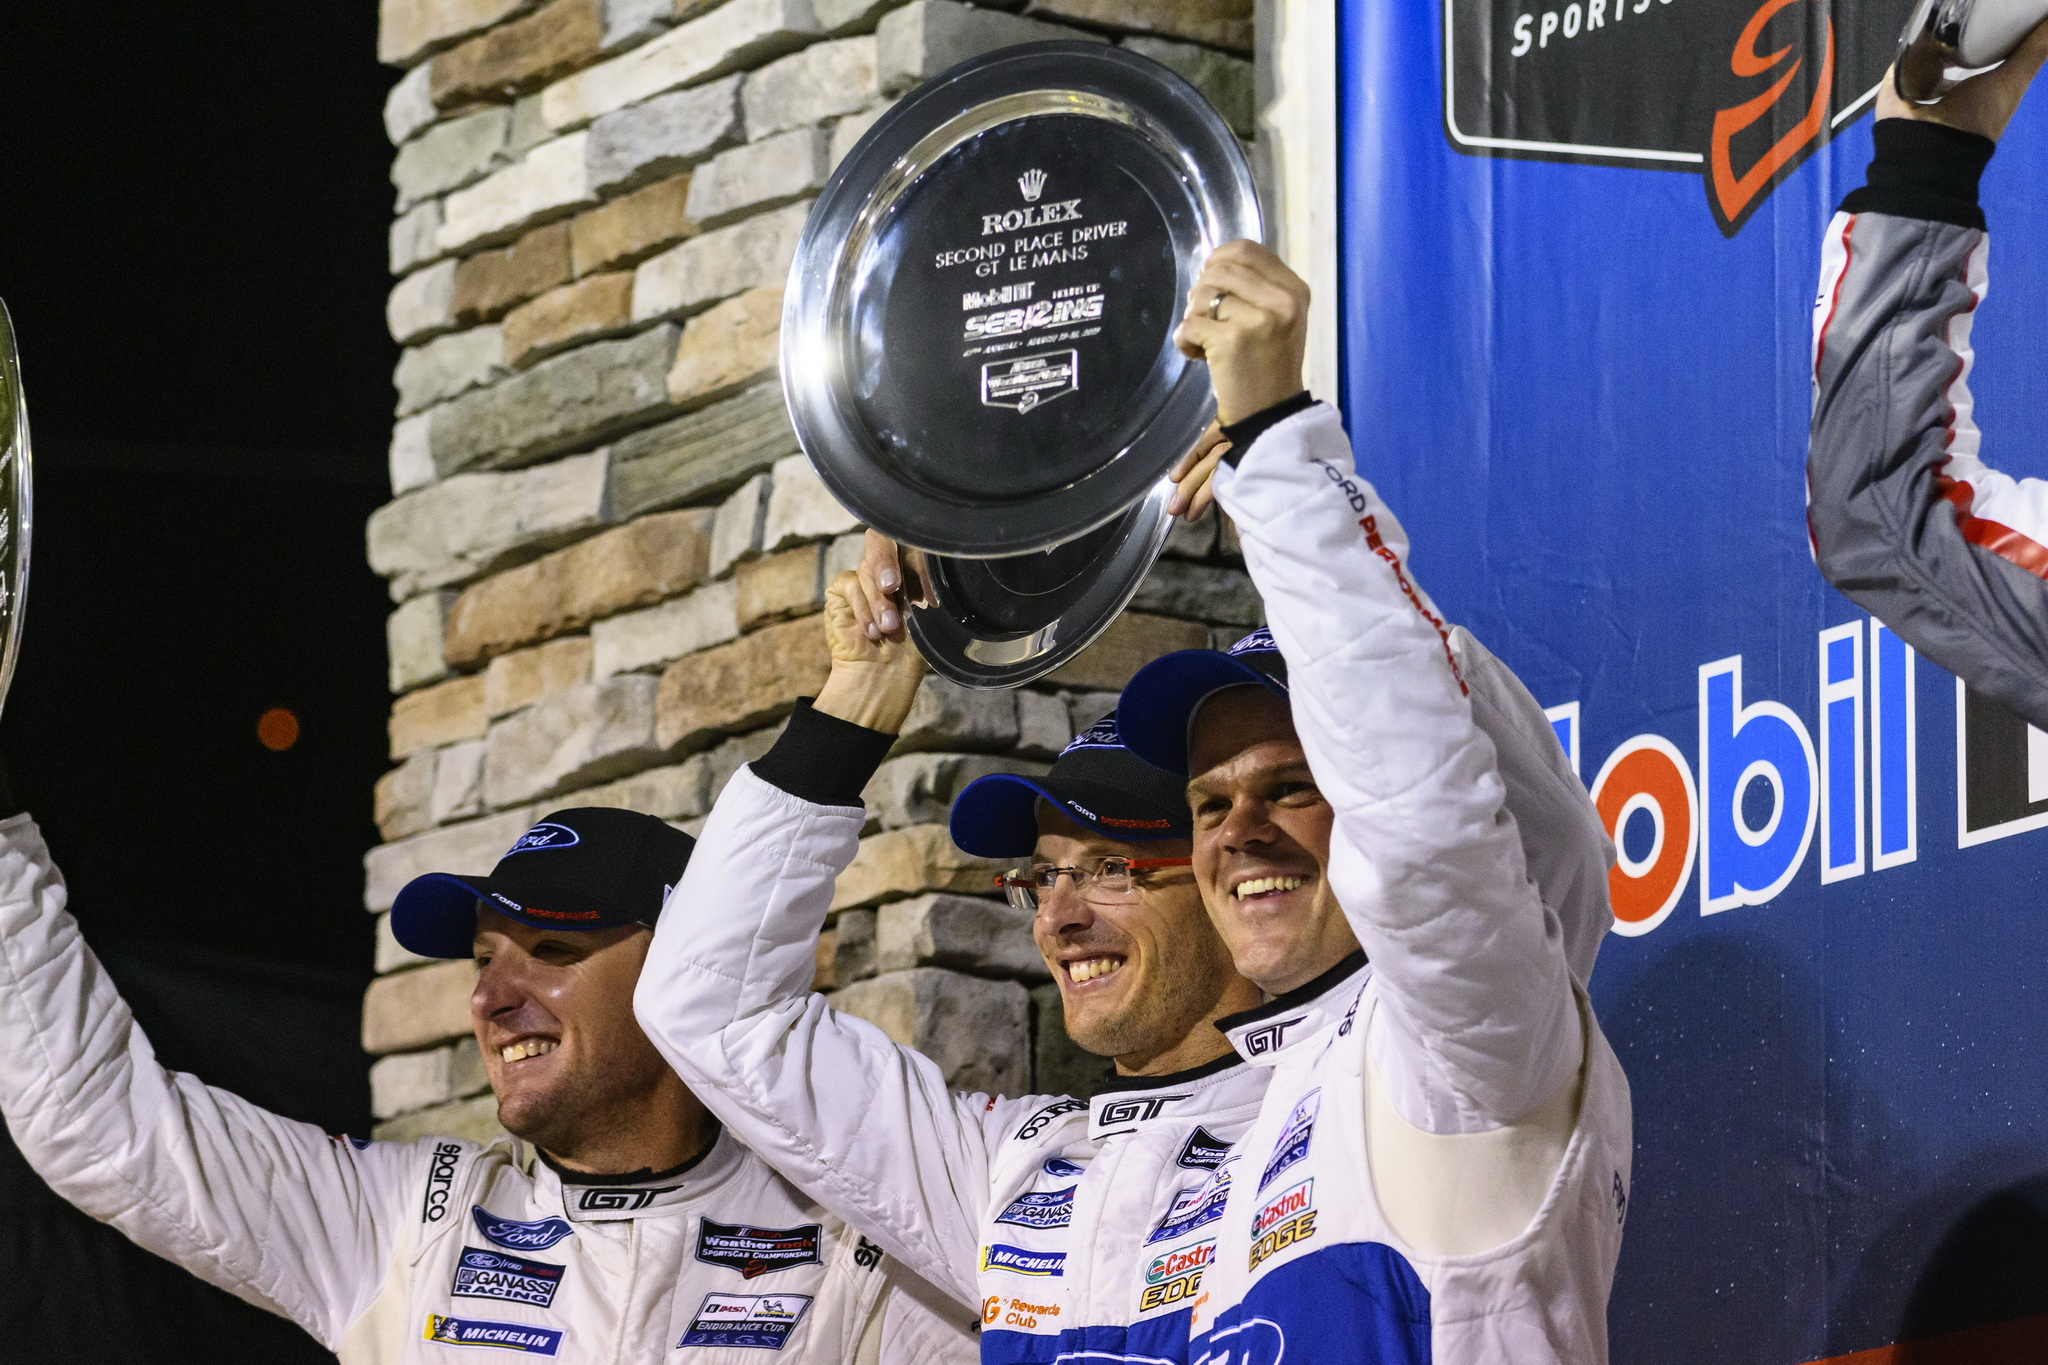 Ford Chip Ganassi Racing Ford GTs Finish Second, Sixth After Leading 11 of the 12 Hours of Sebring